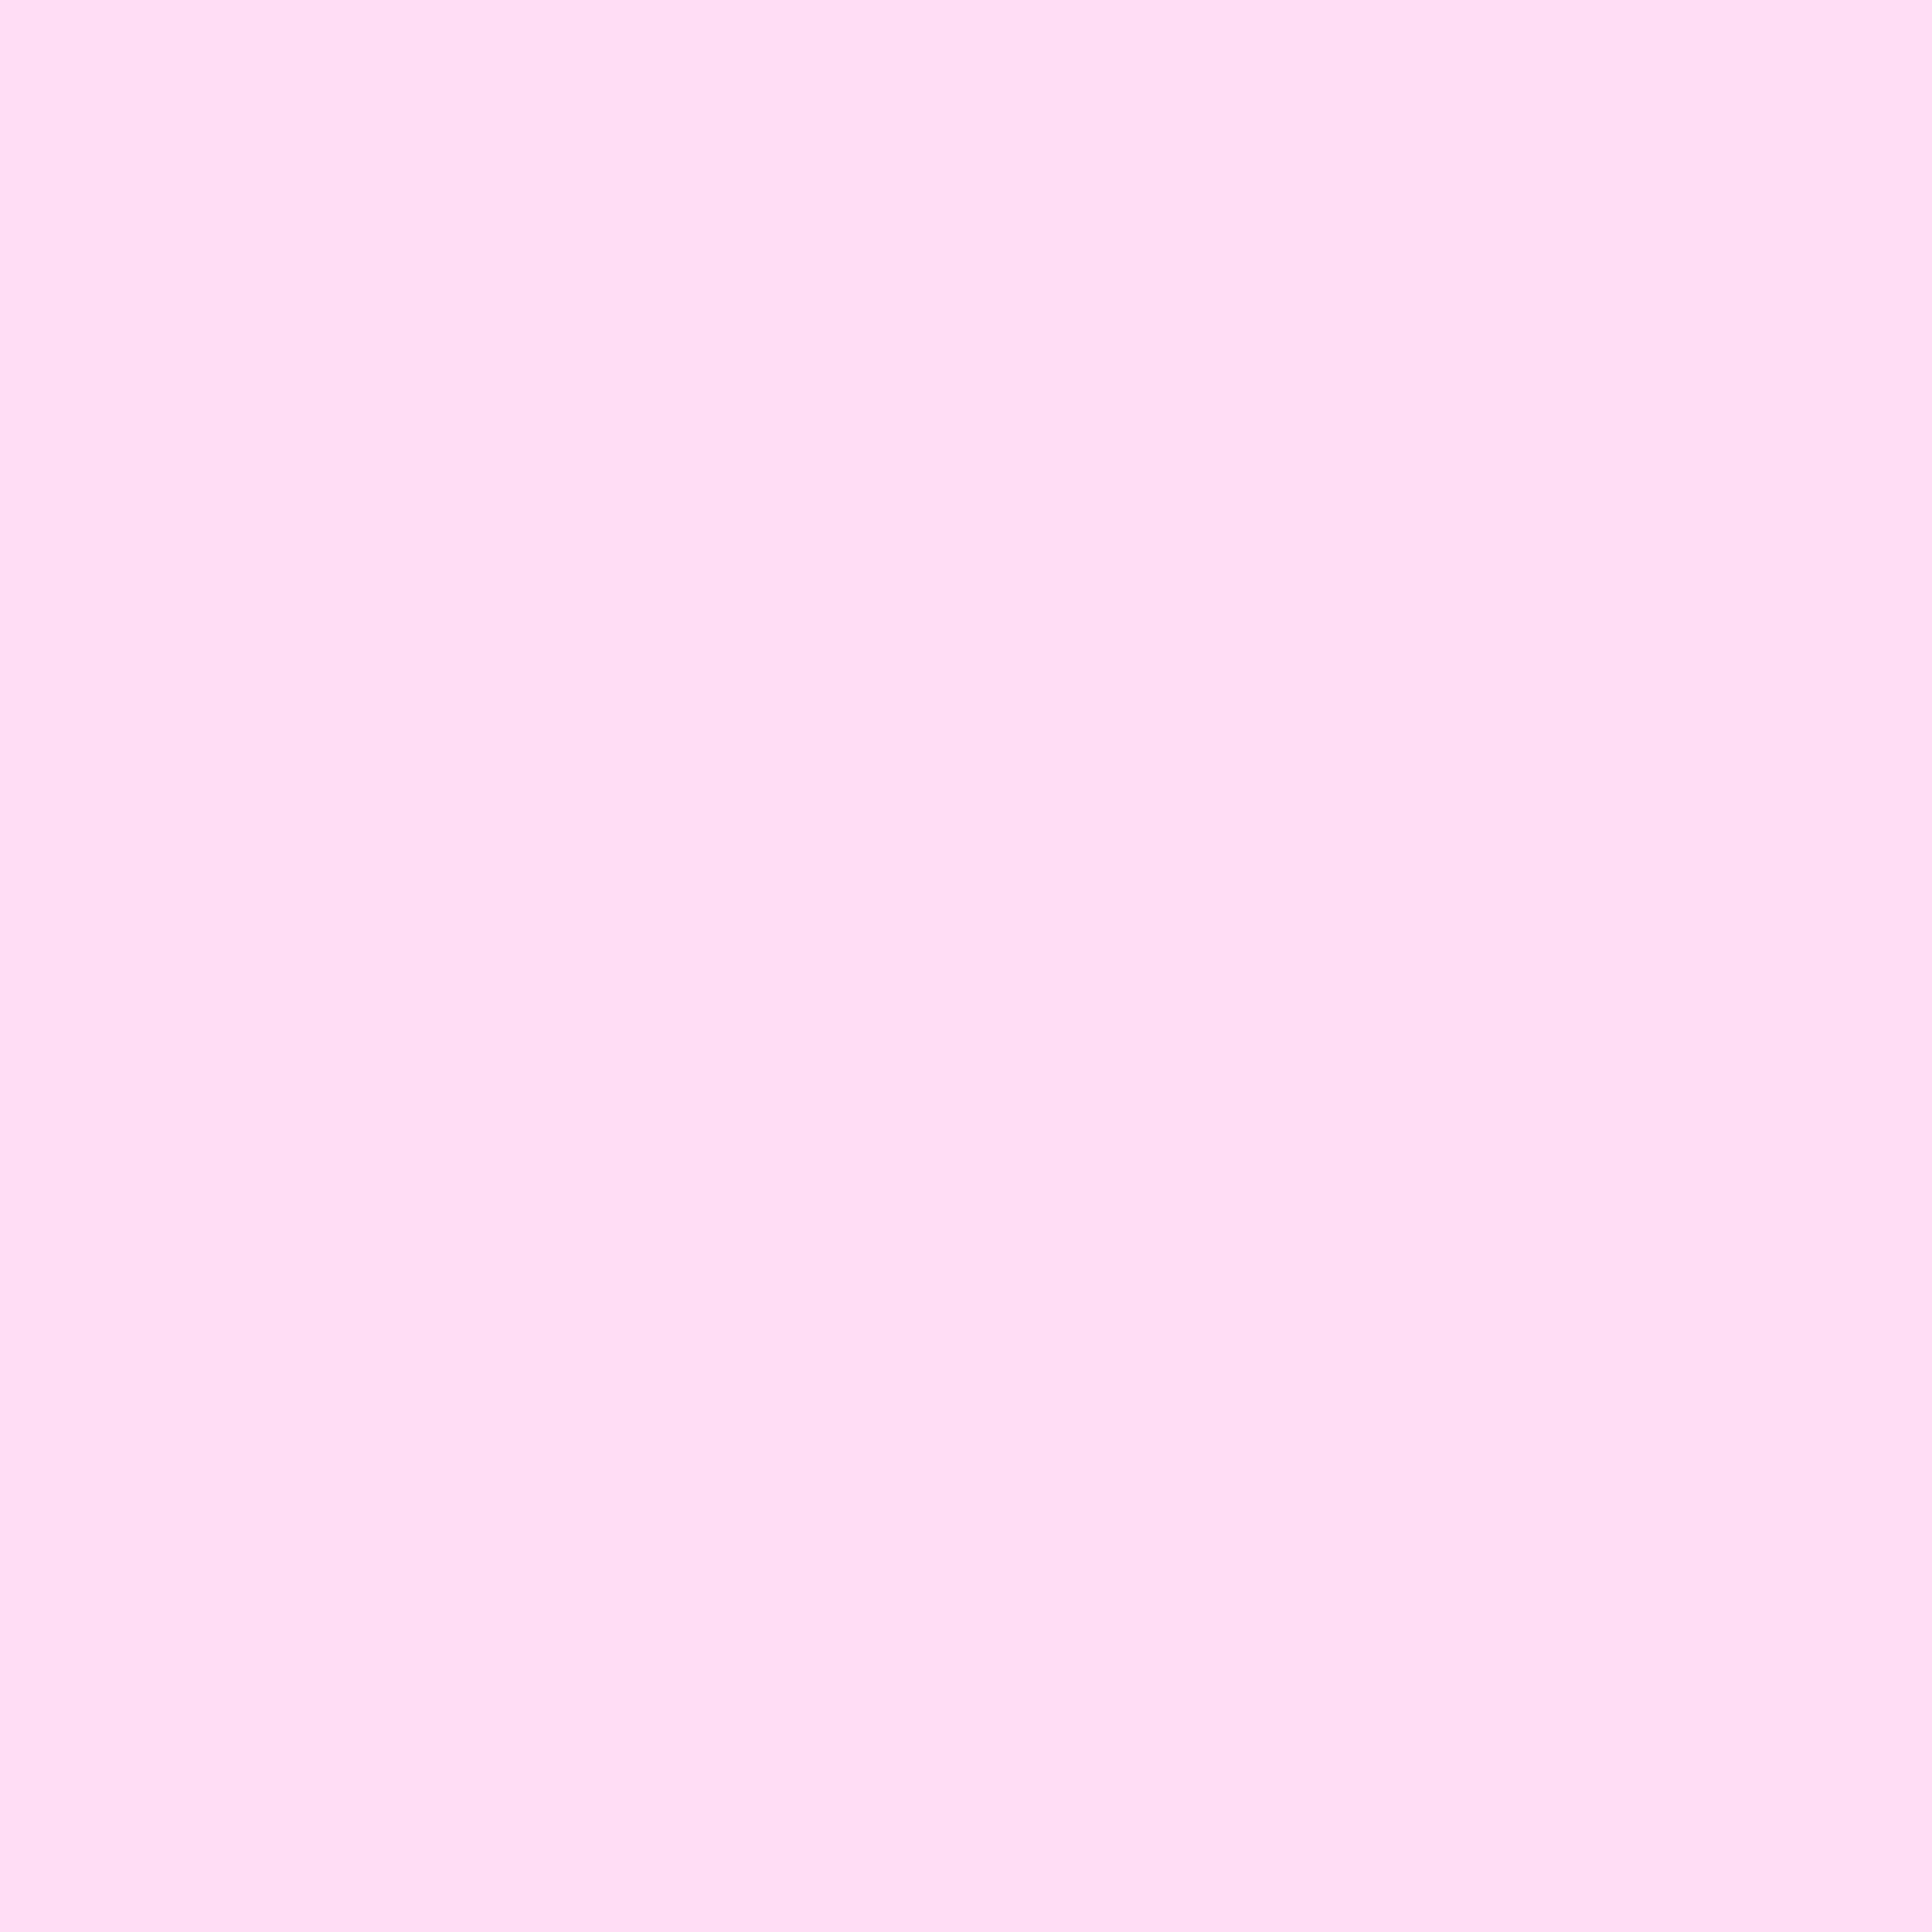 3600x3600 Pink Lace Solid Color Background